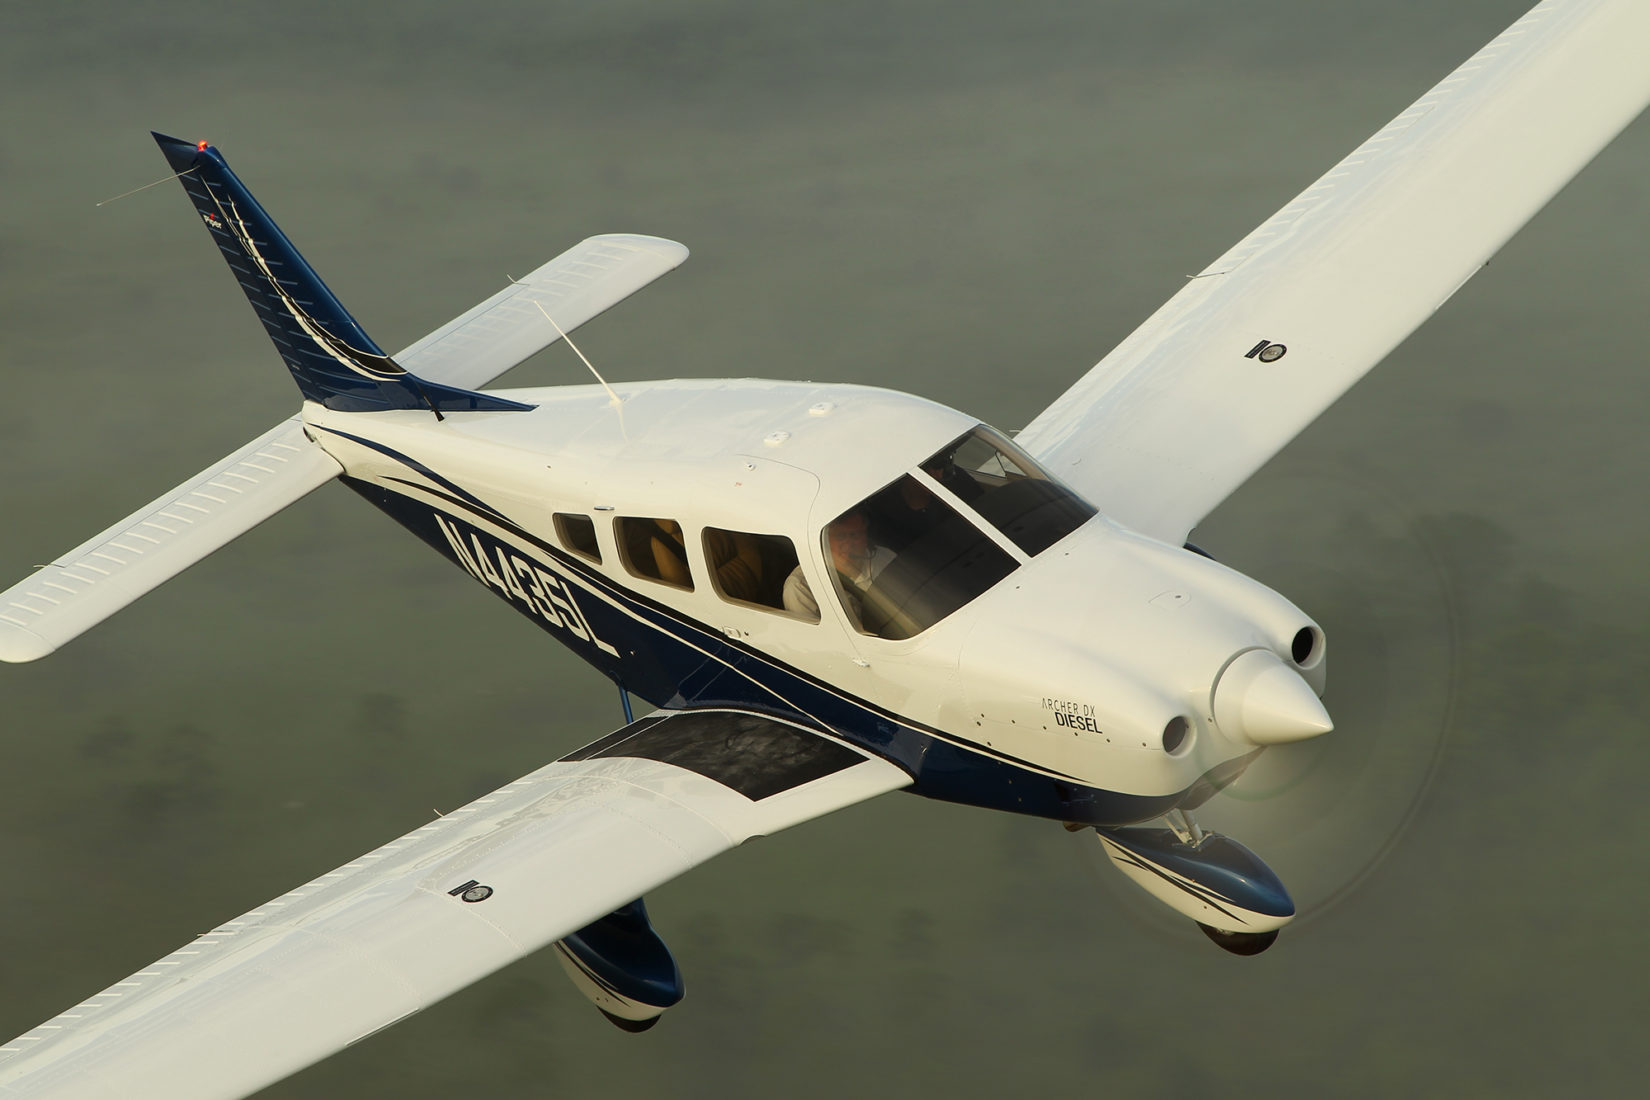 Piper Archer DX aircraft